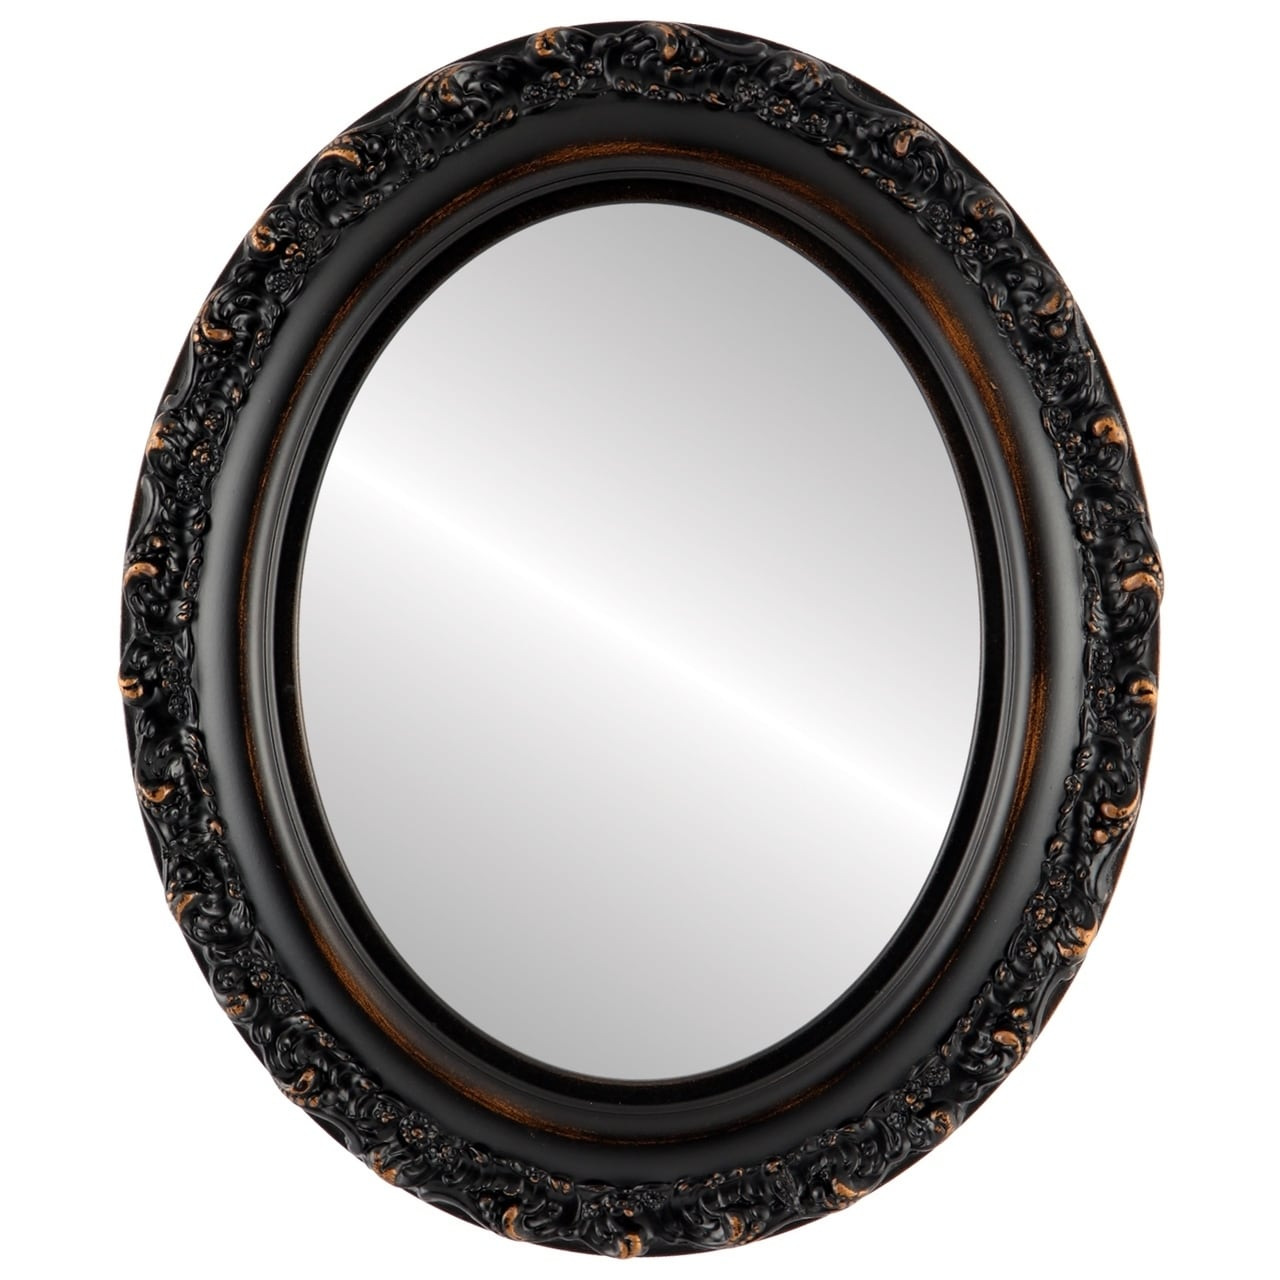 Venice Framed Oval Mirror In Rubbed Bronze Antique Free Shipping Today 19471224